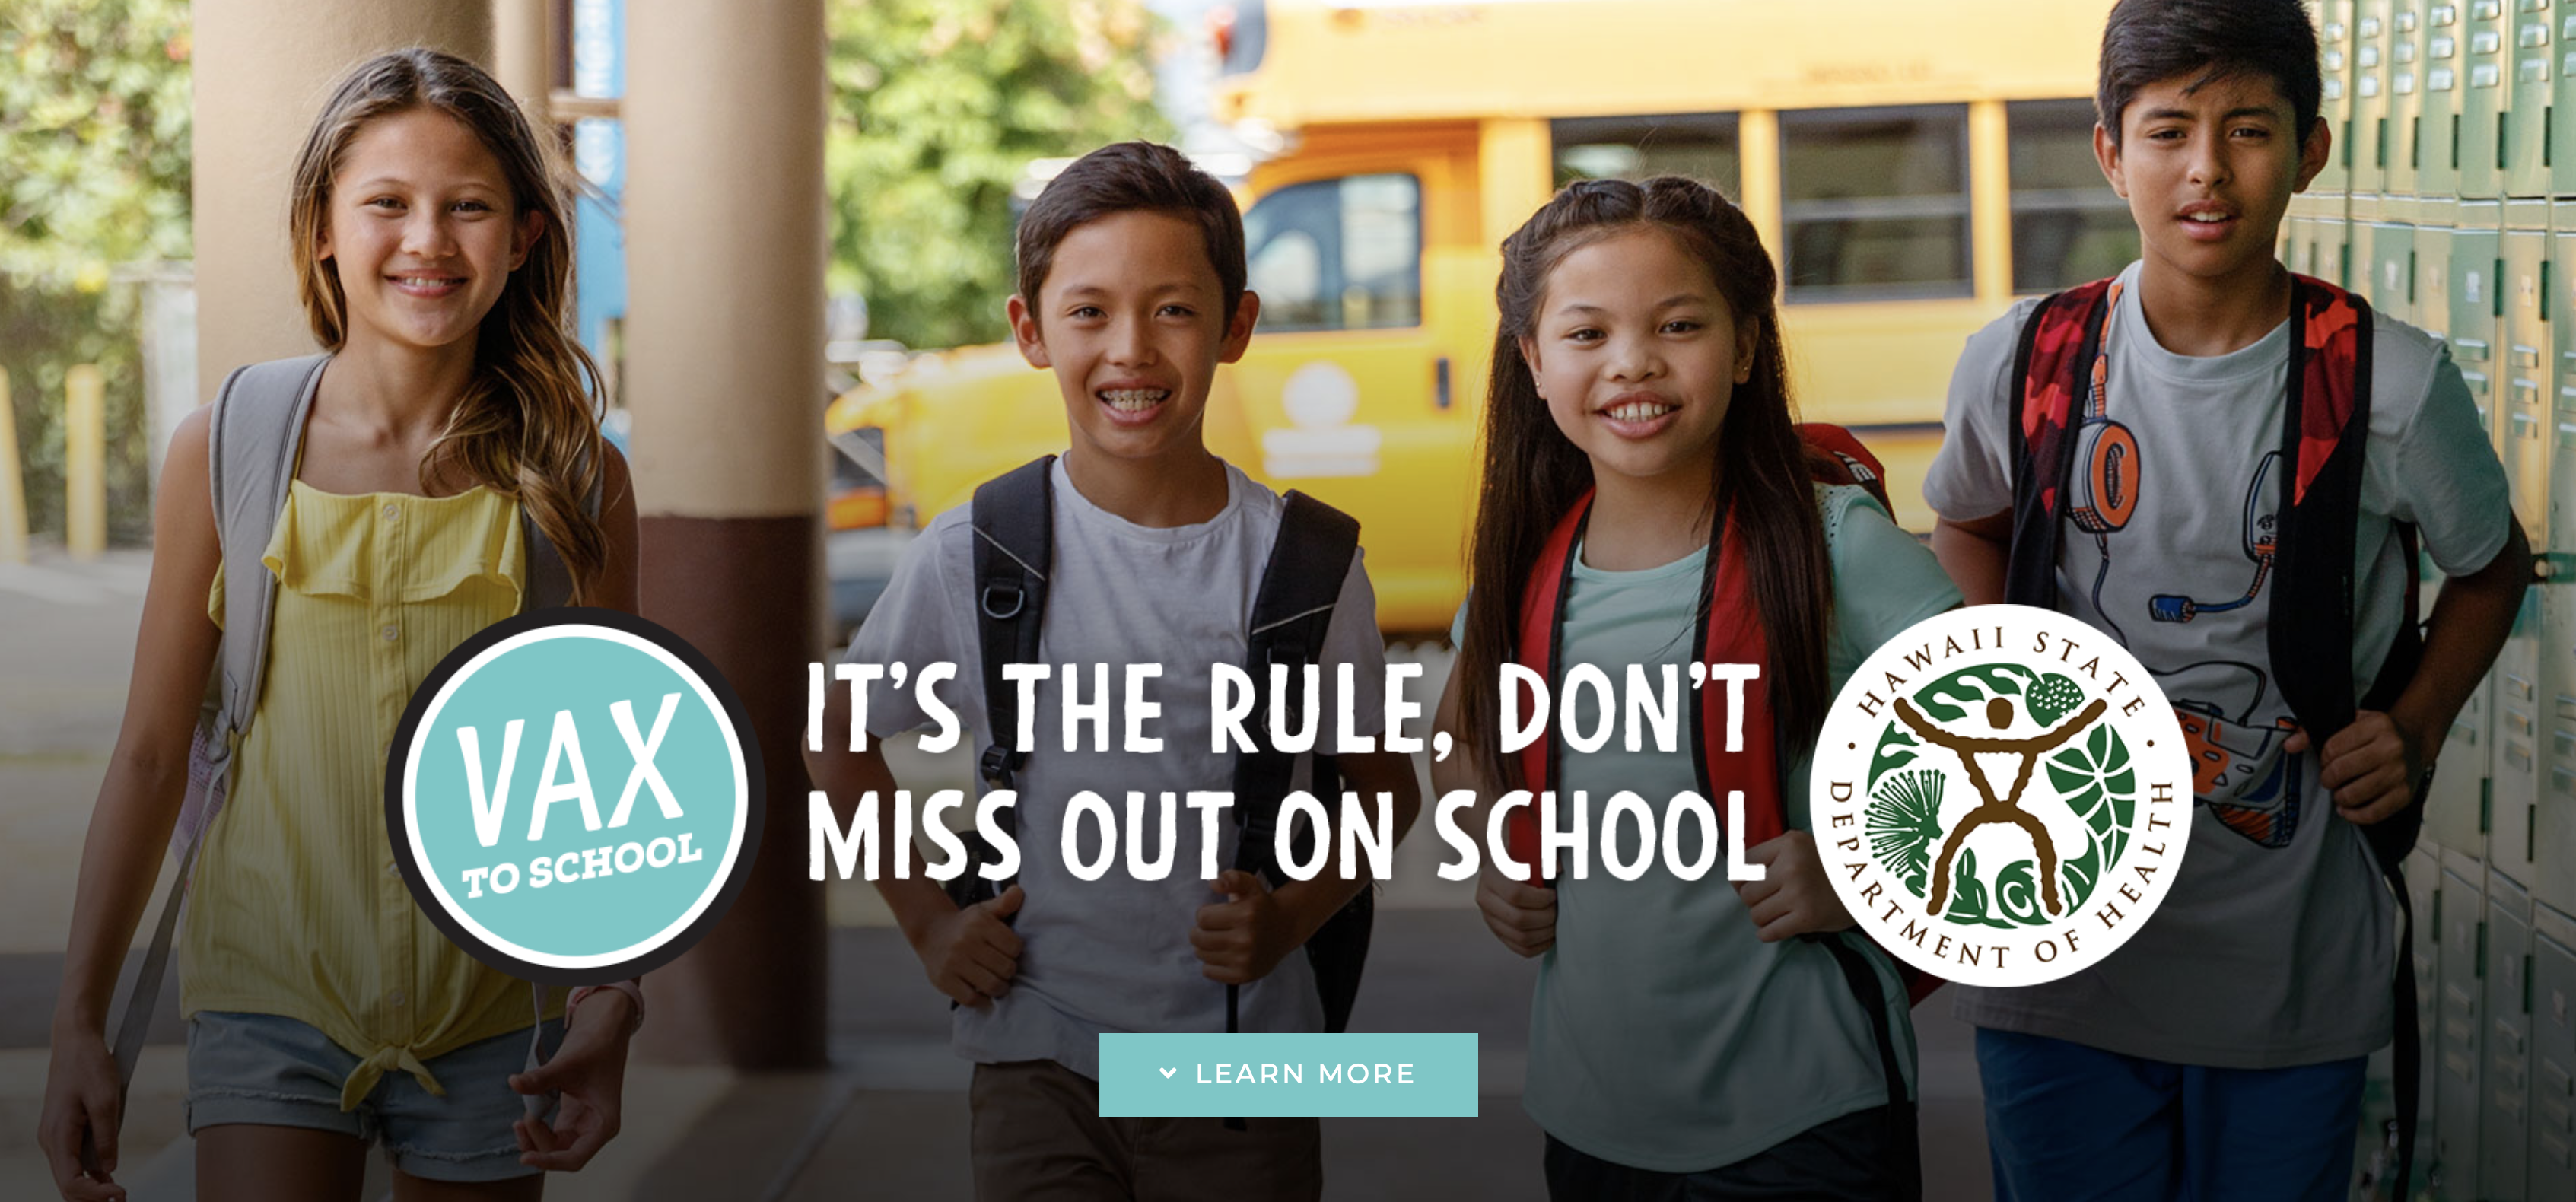 DOH Encourages Parents of Incoming 7th Graders to Schedule Back-to-School Appointments Now